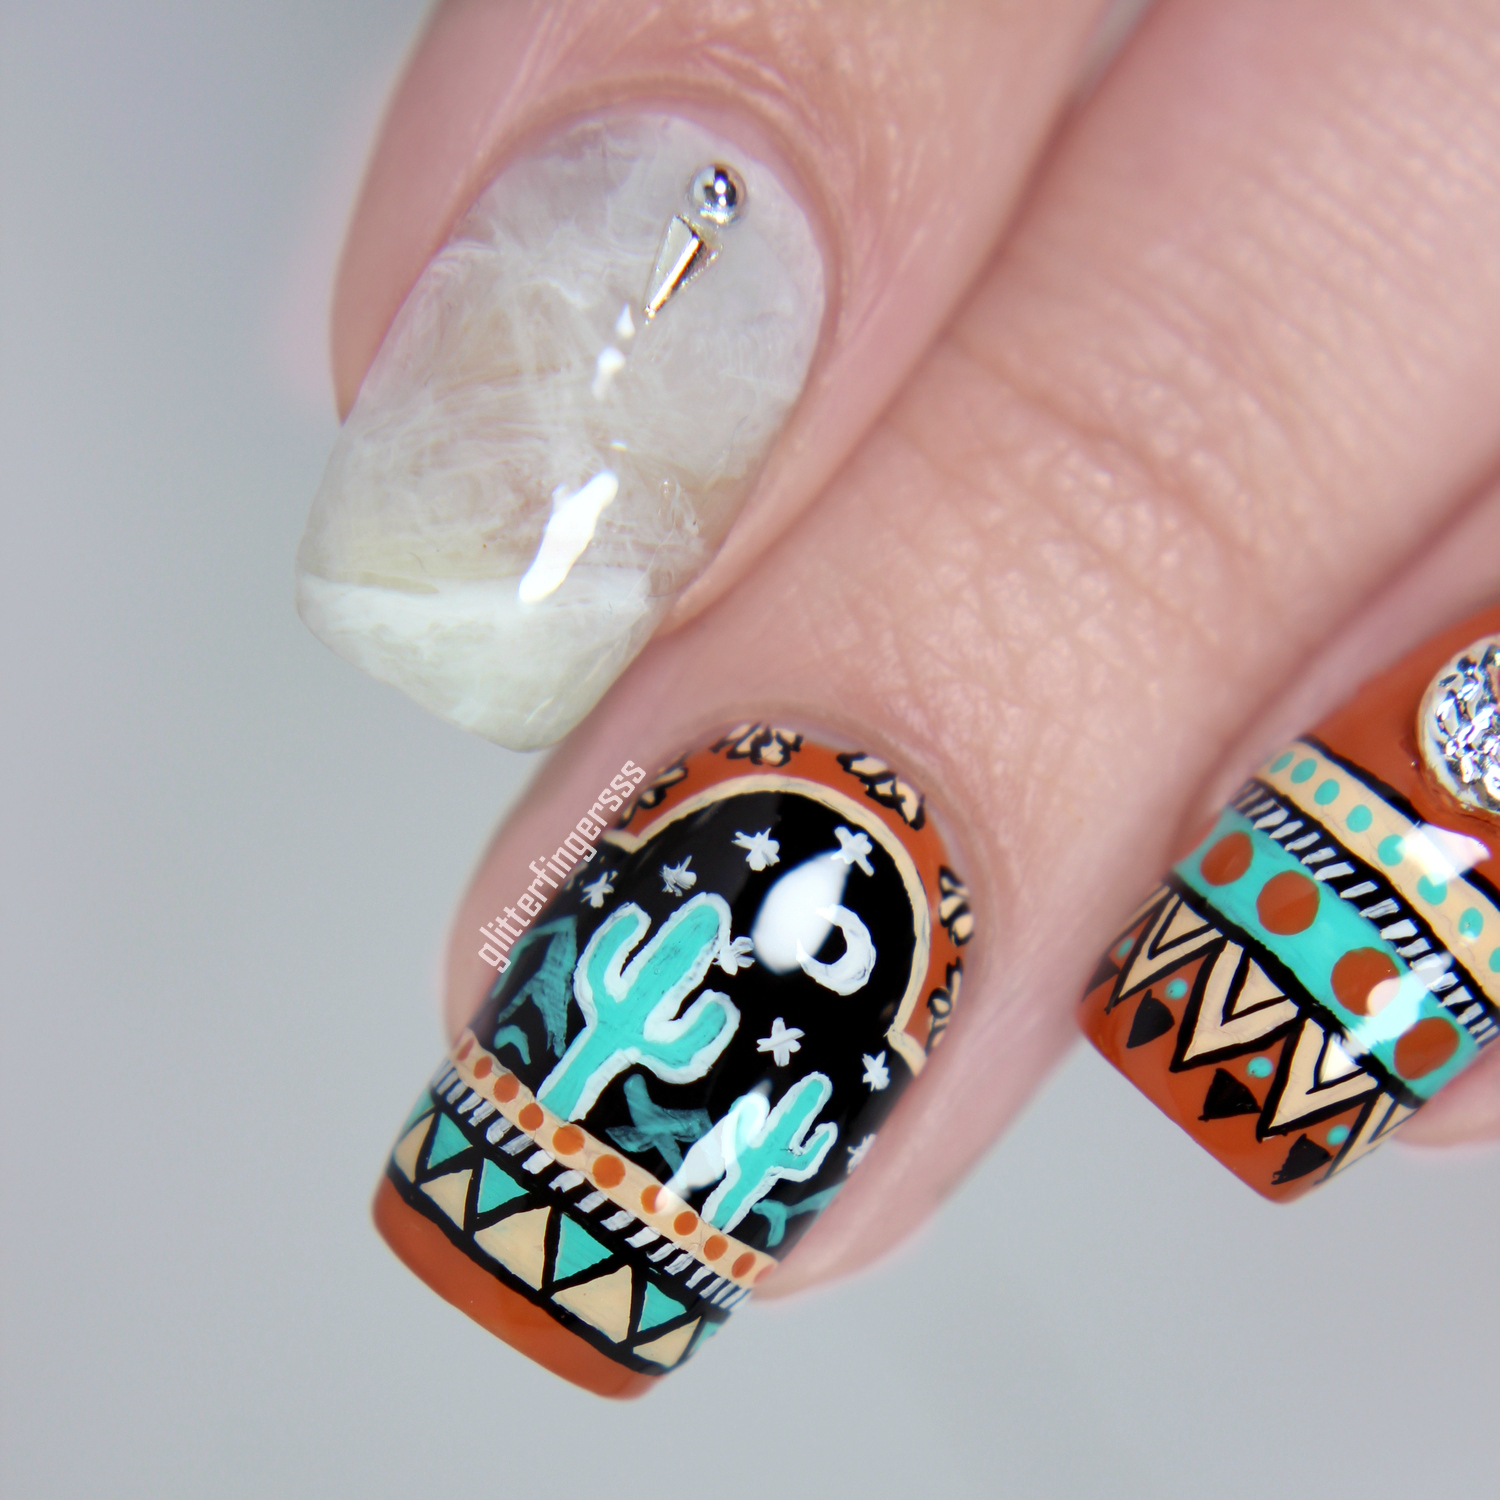 Mexican Crystals Tutorial Glitterfingersss In English I Wasnt Going To Make A For The